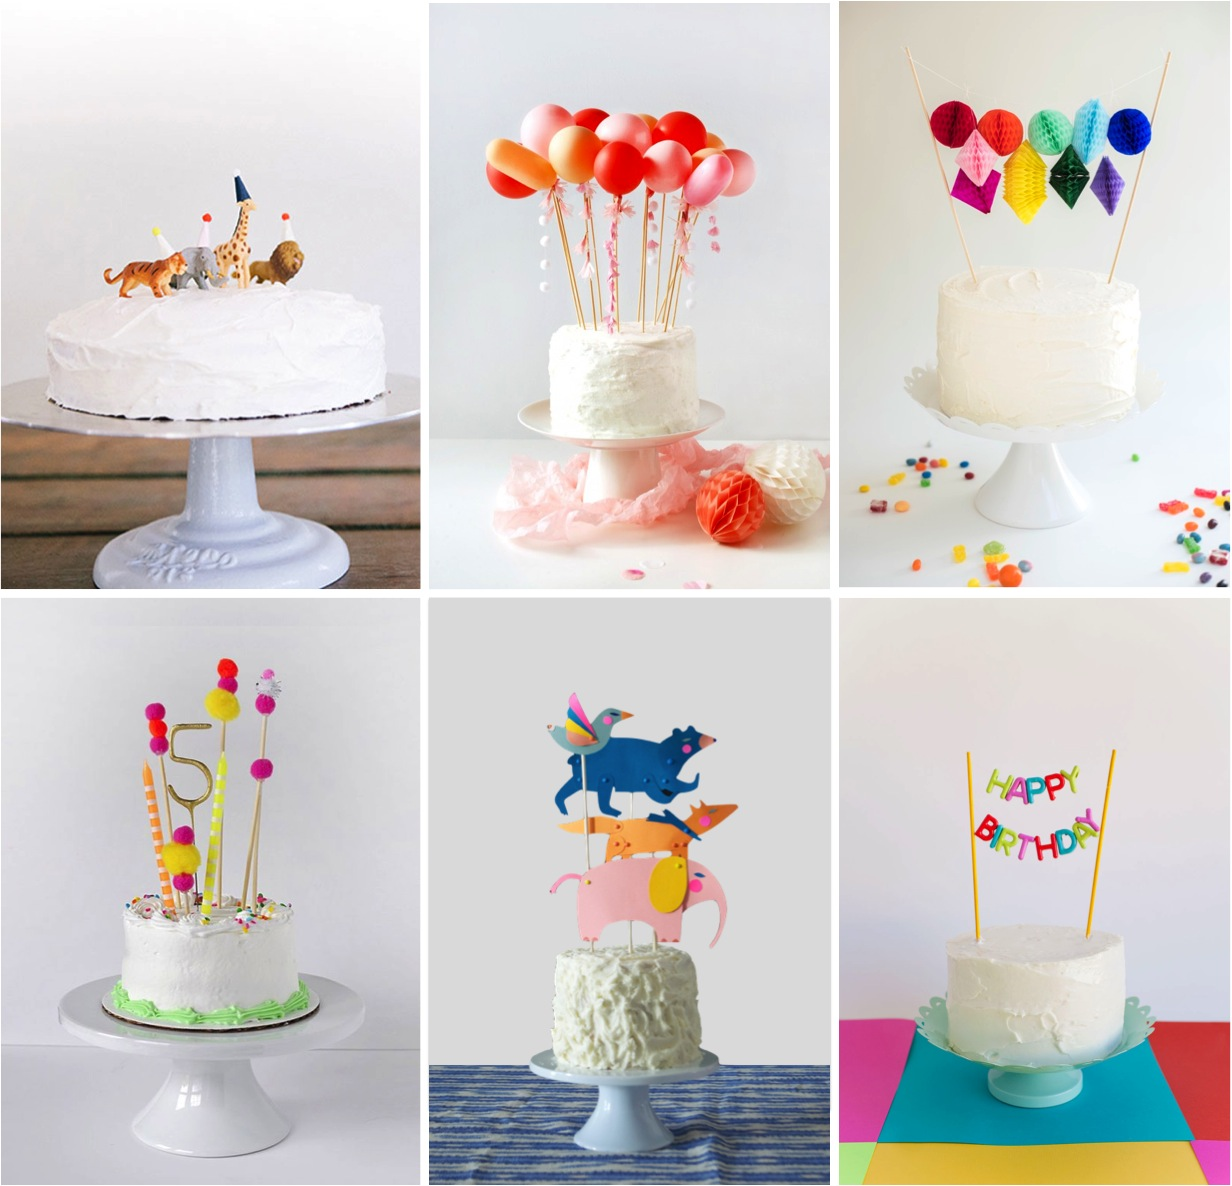 Easy Home Cake Decorating Ideas Part - 23: Easy Cake Decorating Ideas